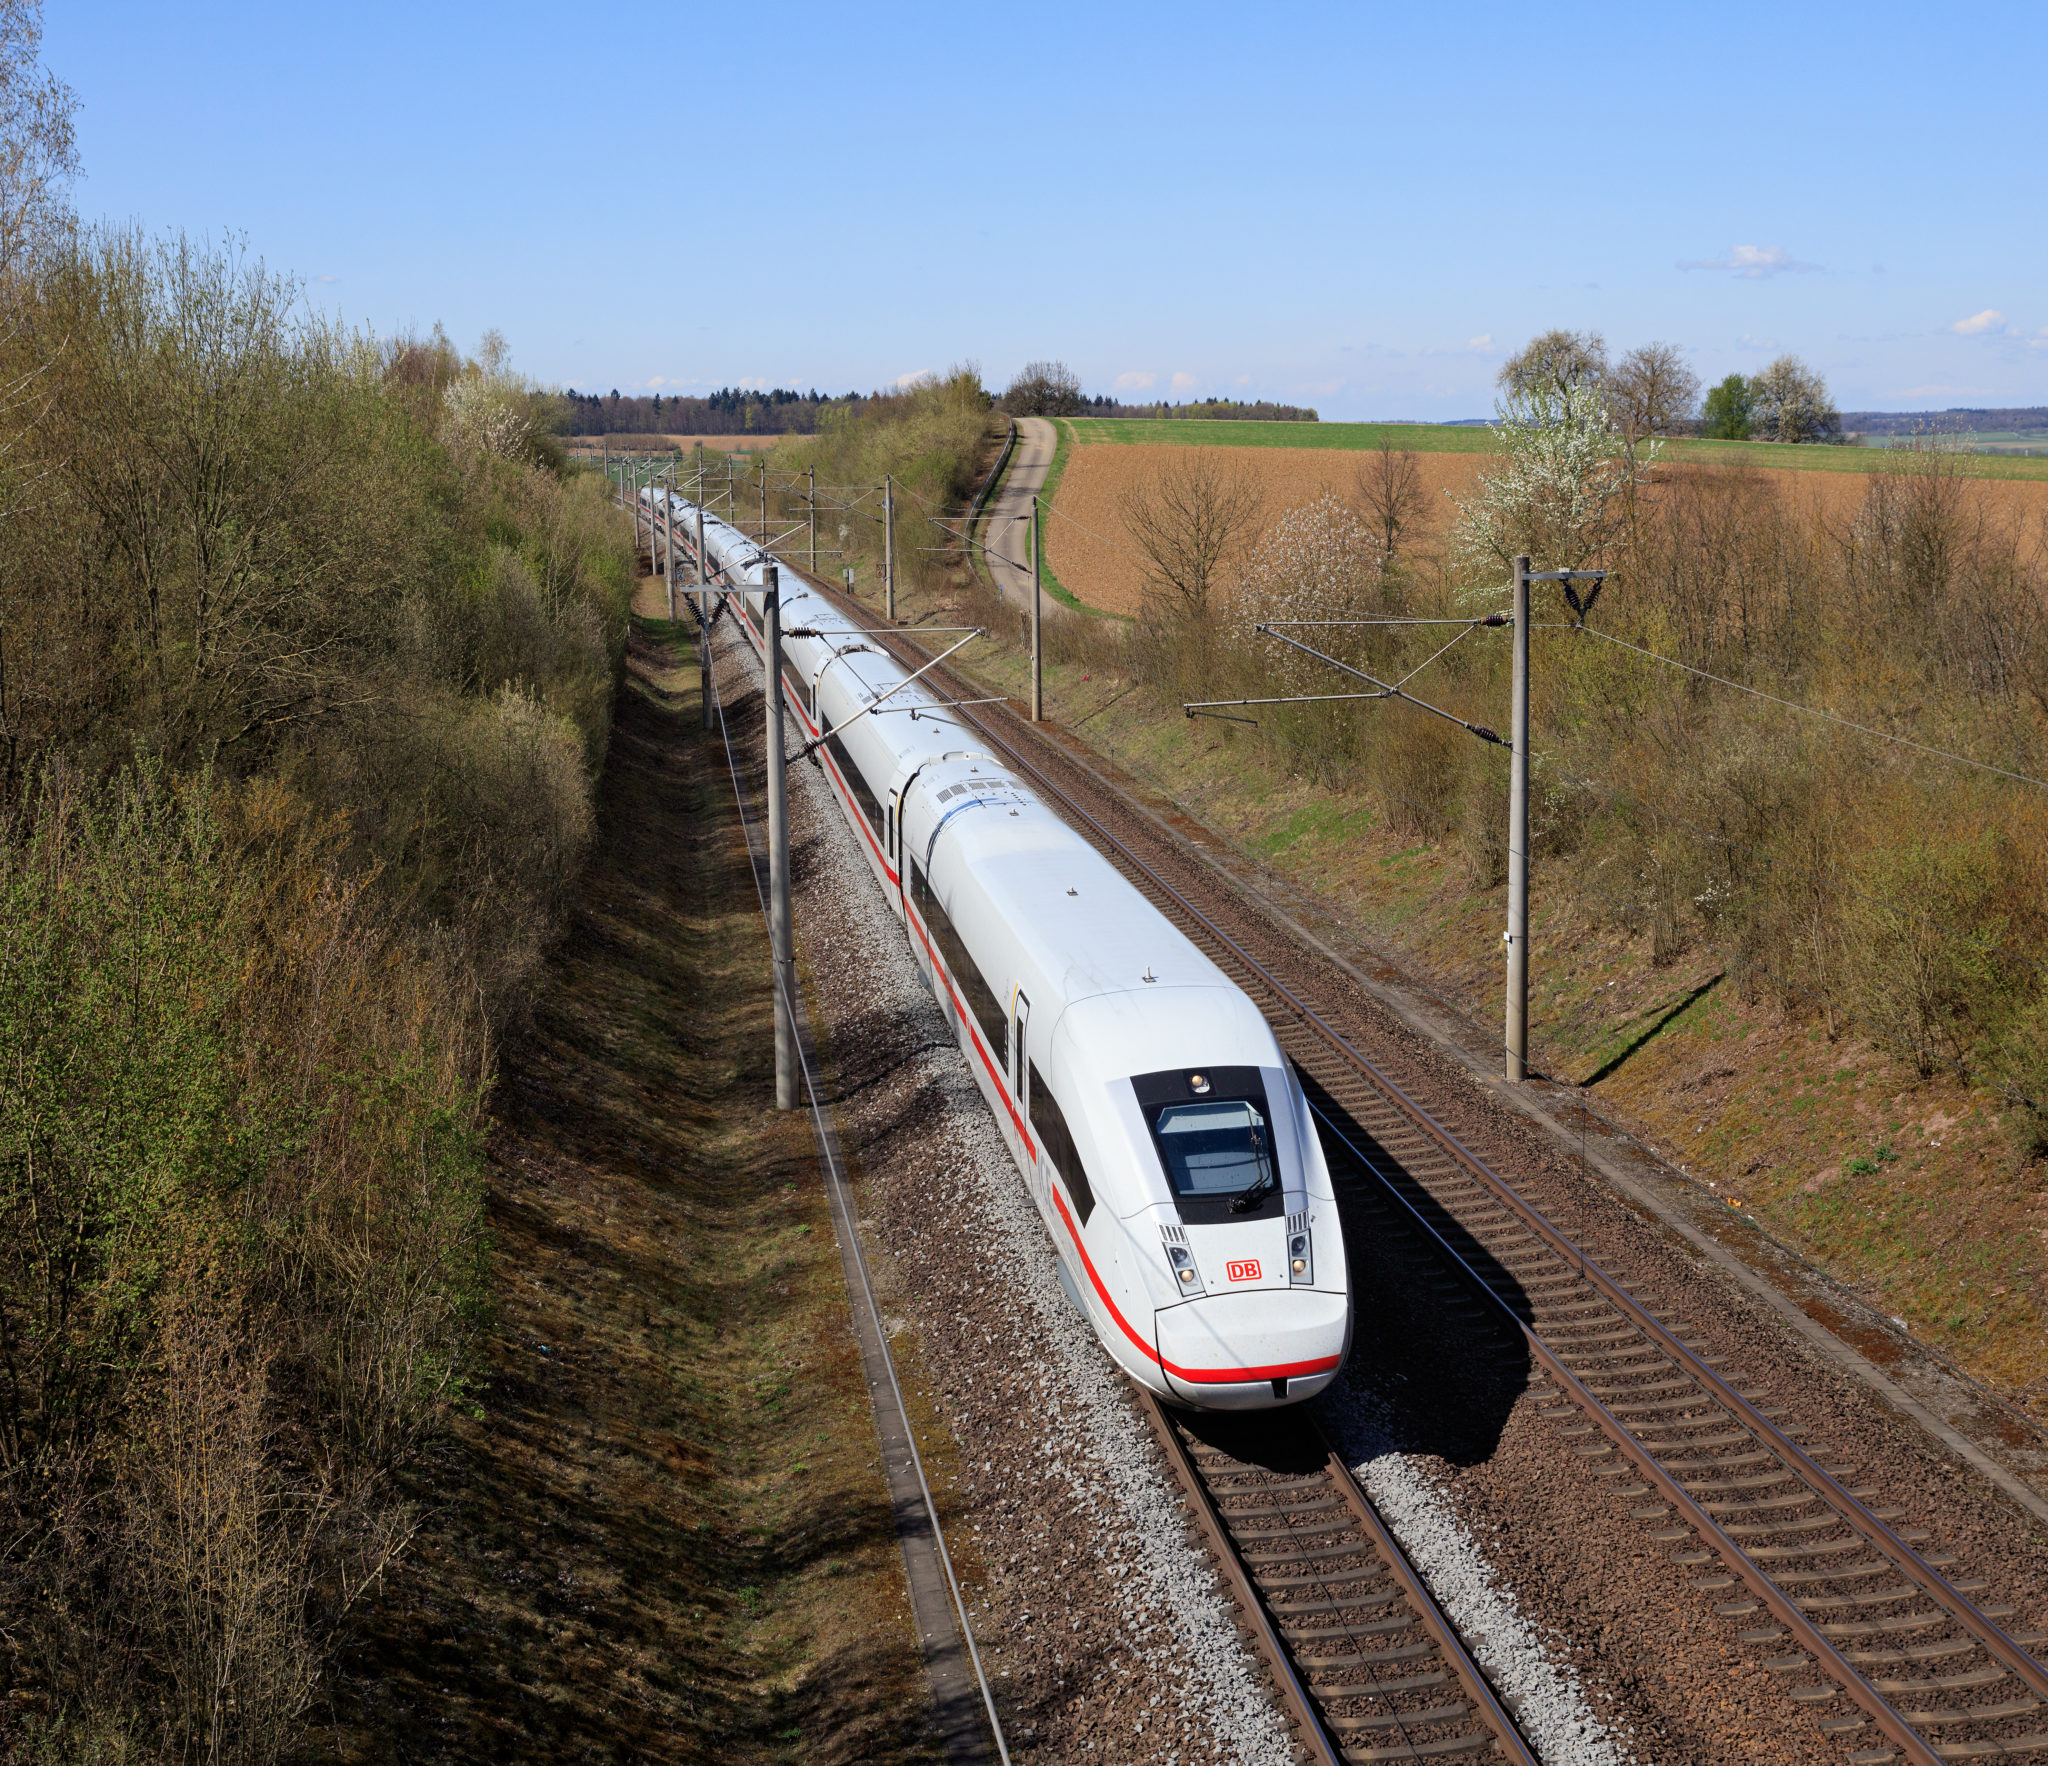 high-speed rail line in Germany